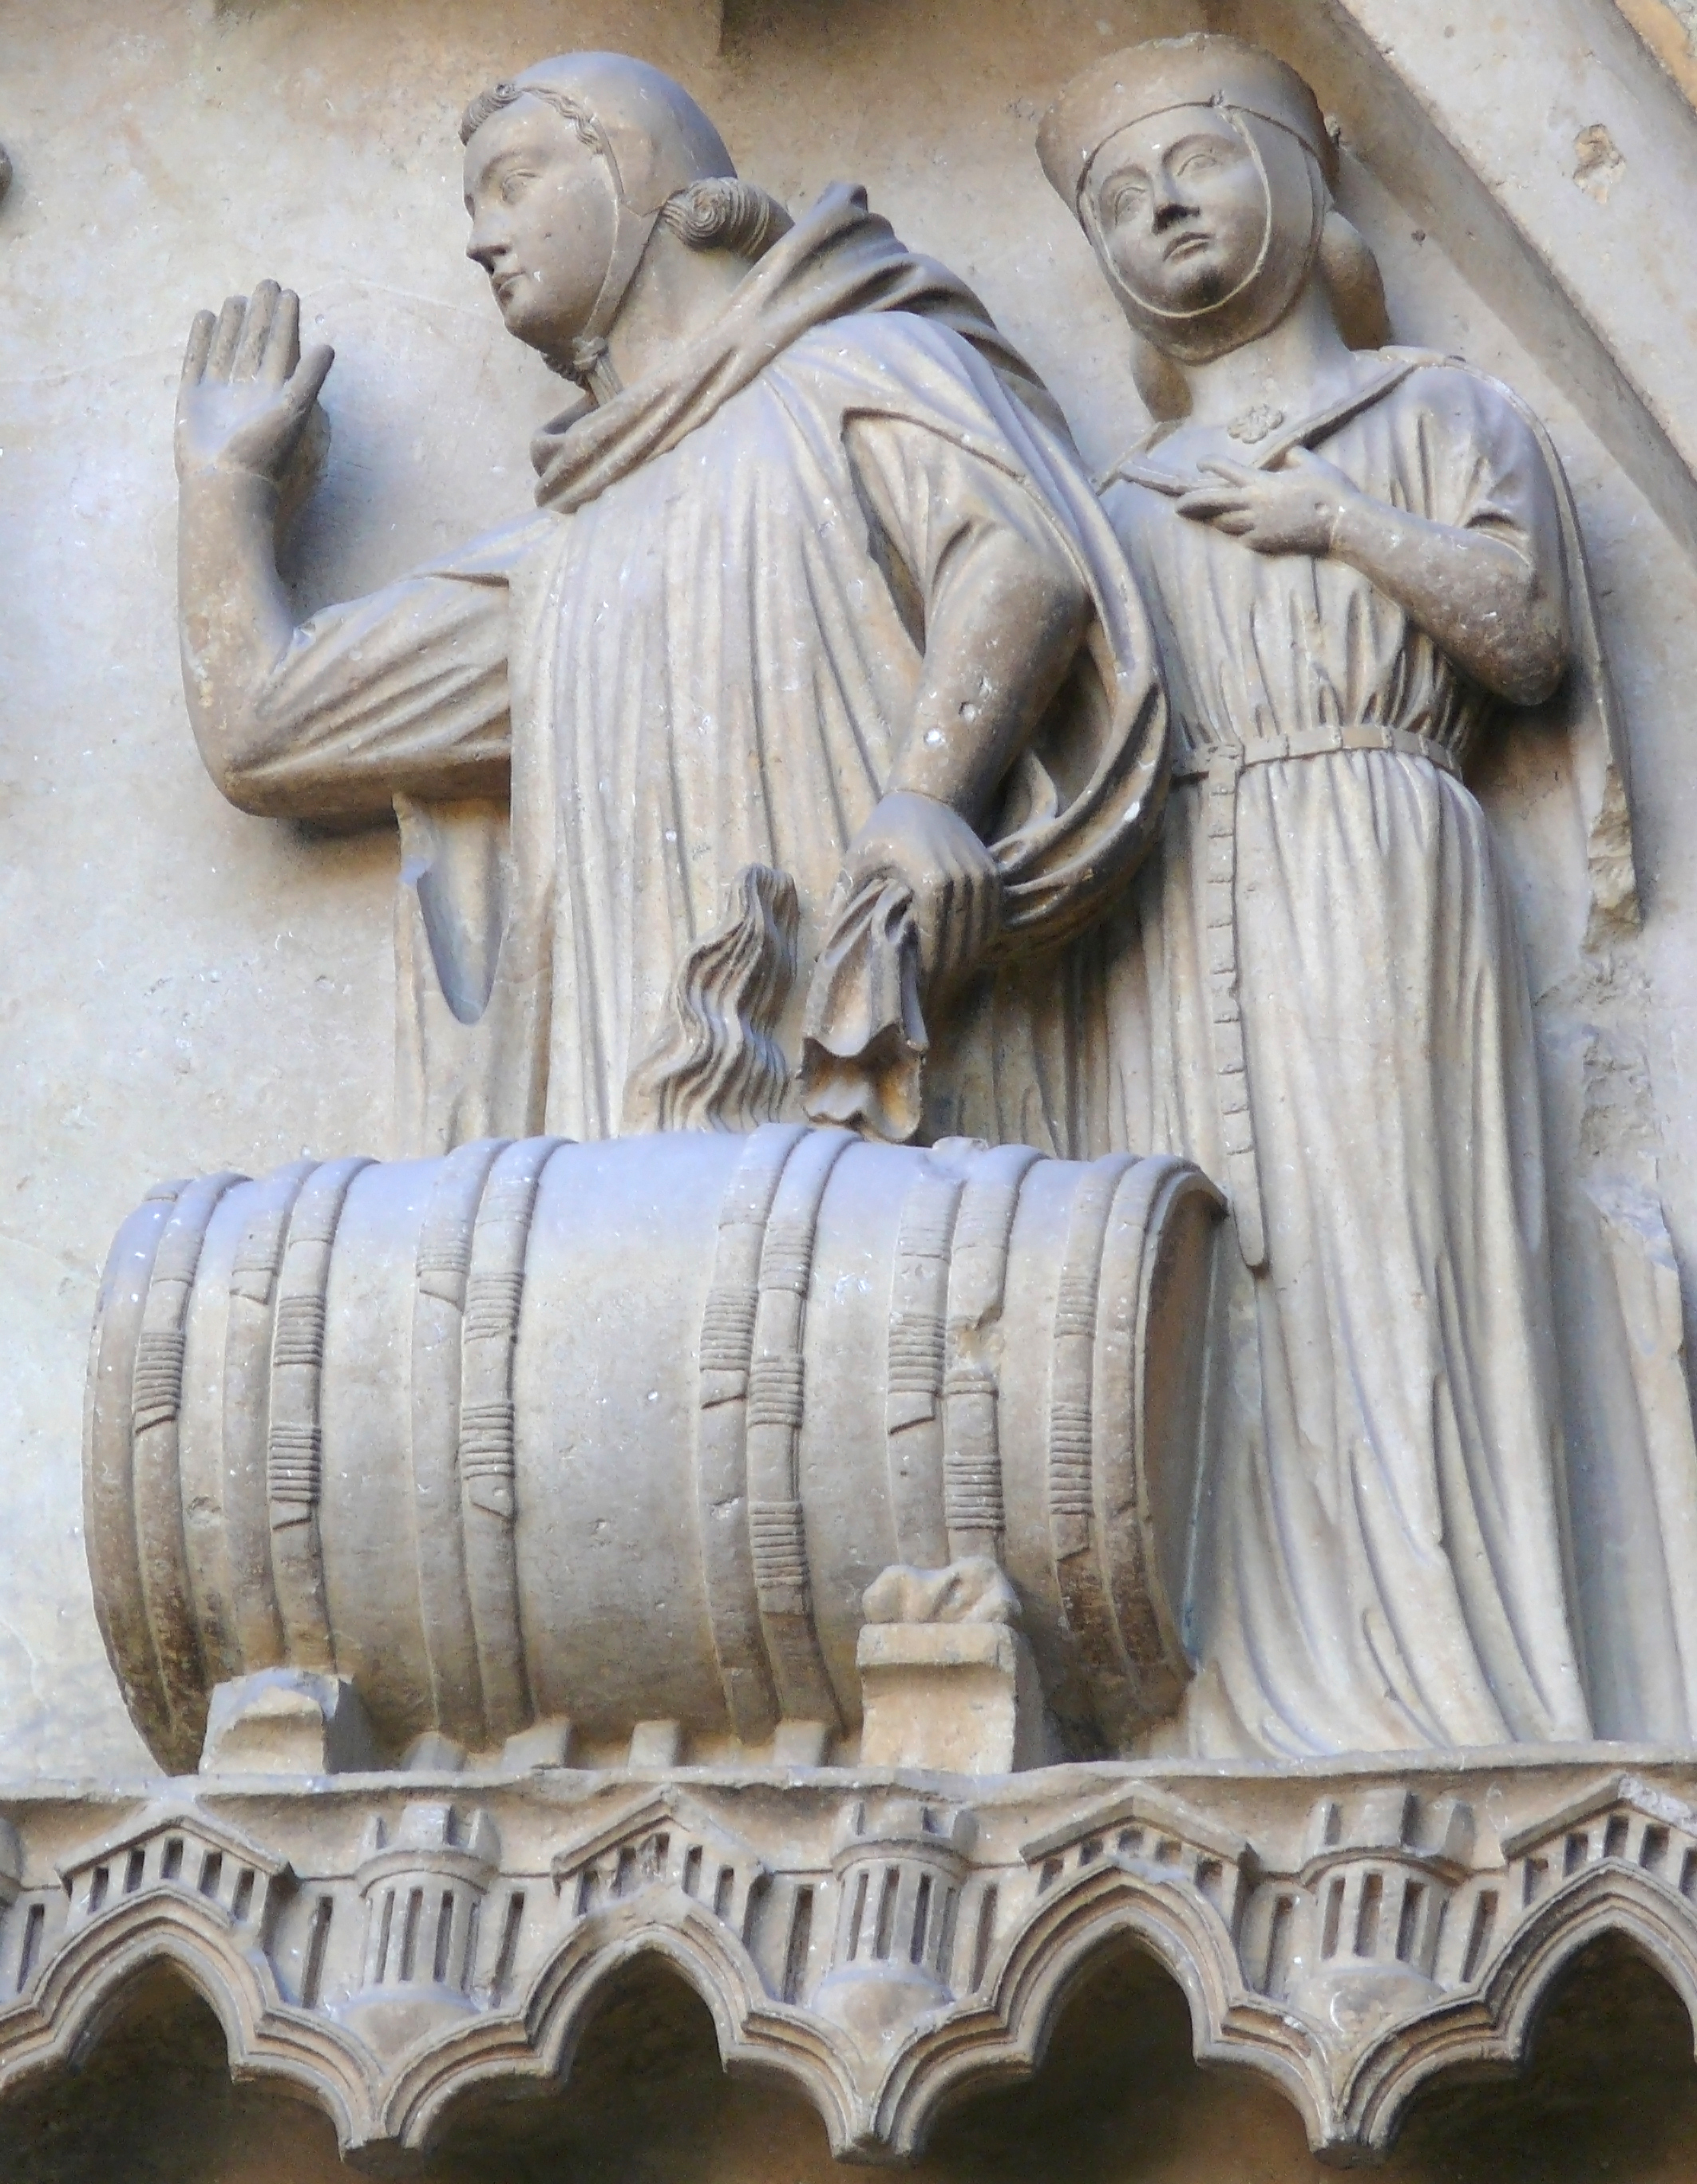 Reims Cathedral Sculpture File:cathedral Reims Barrel